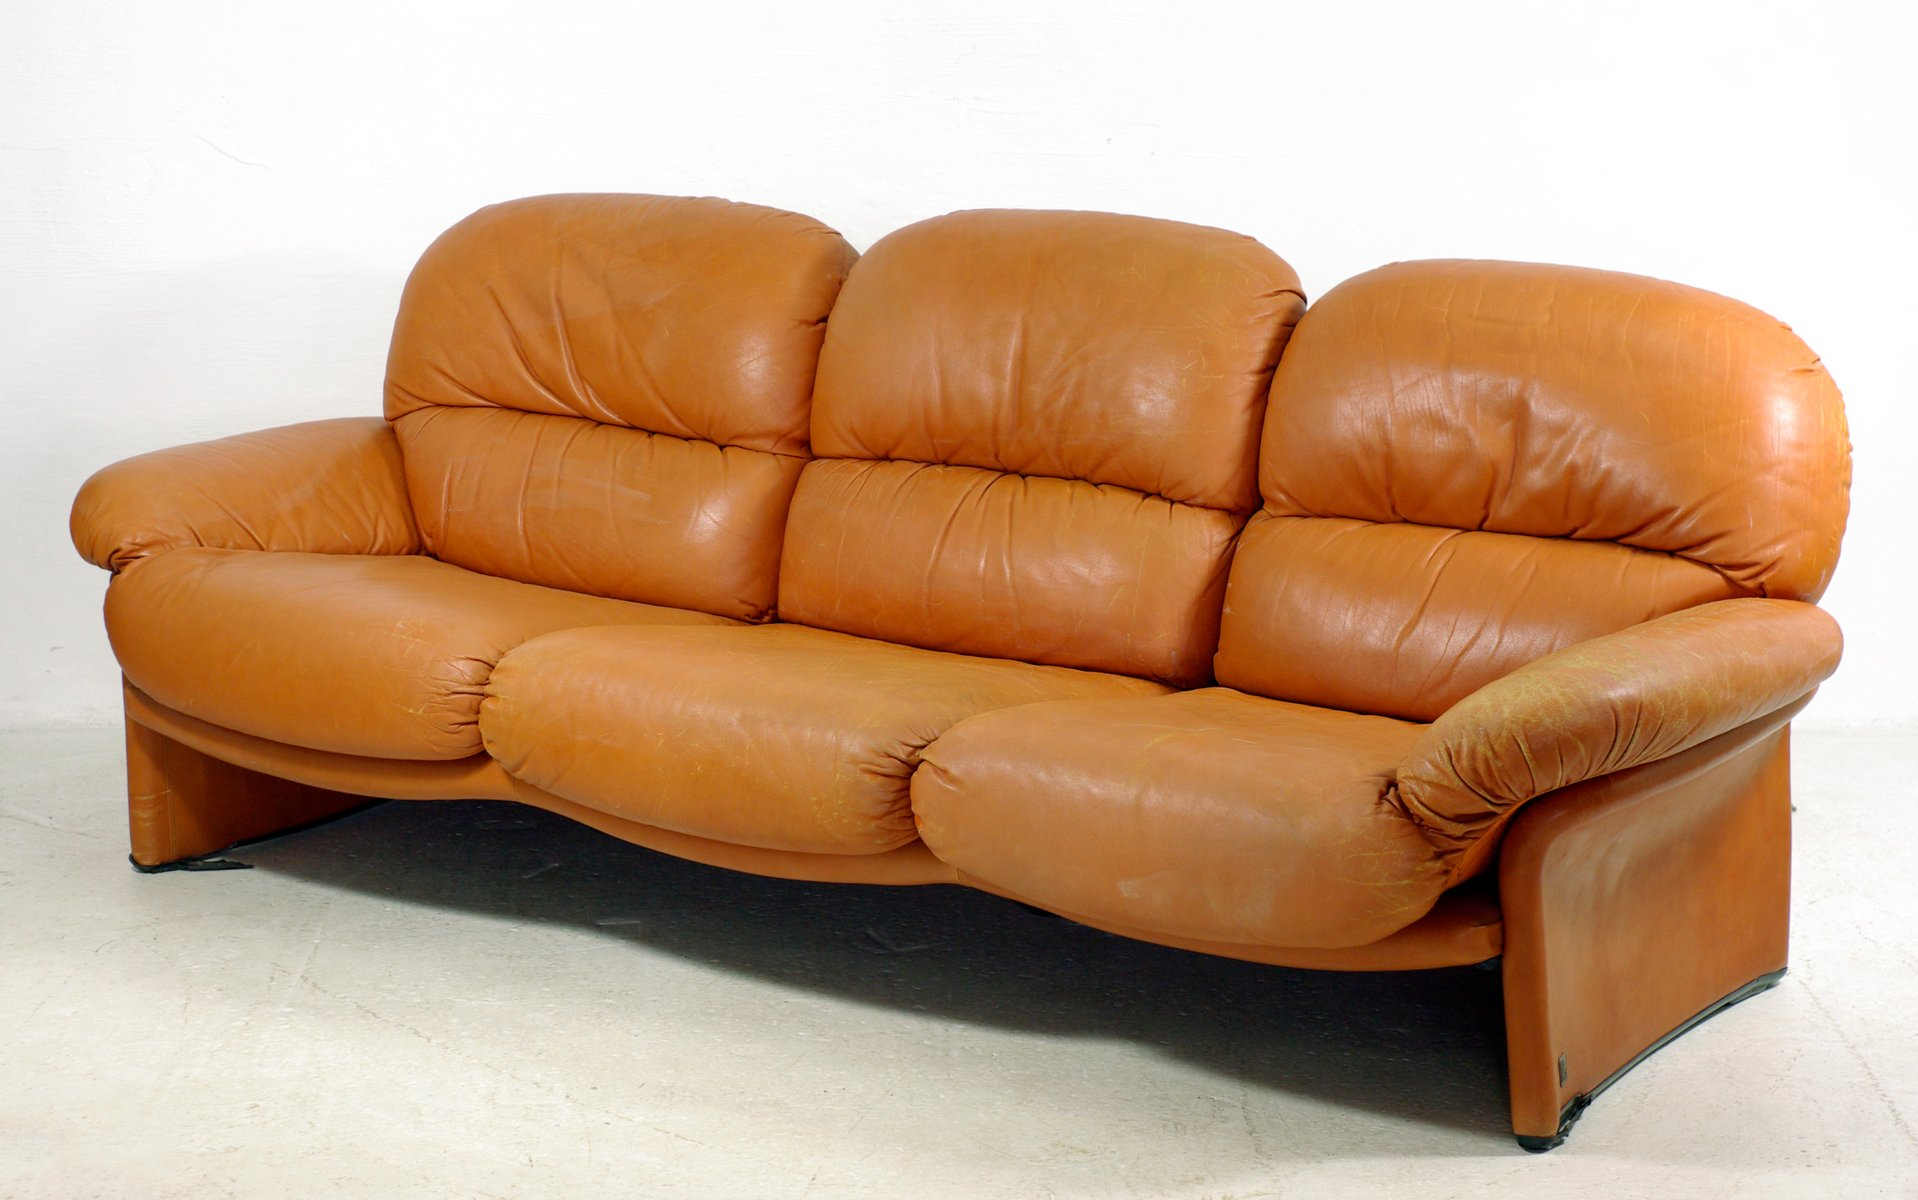 tuscany 3 seater leather sofa stani set italian vintage from busnelli for